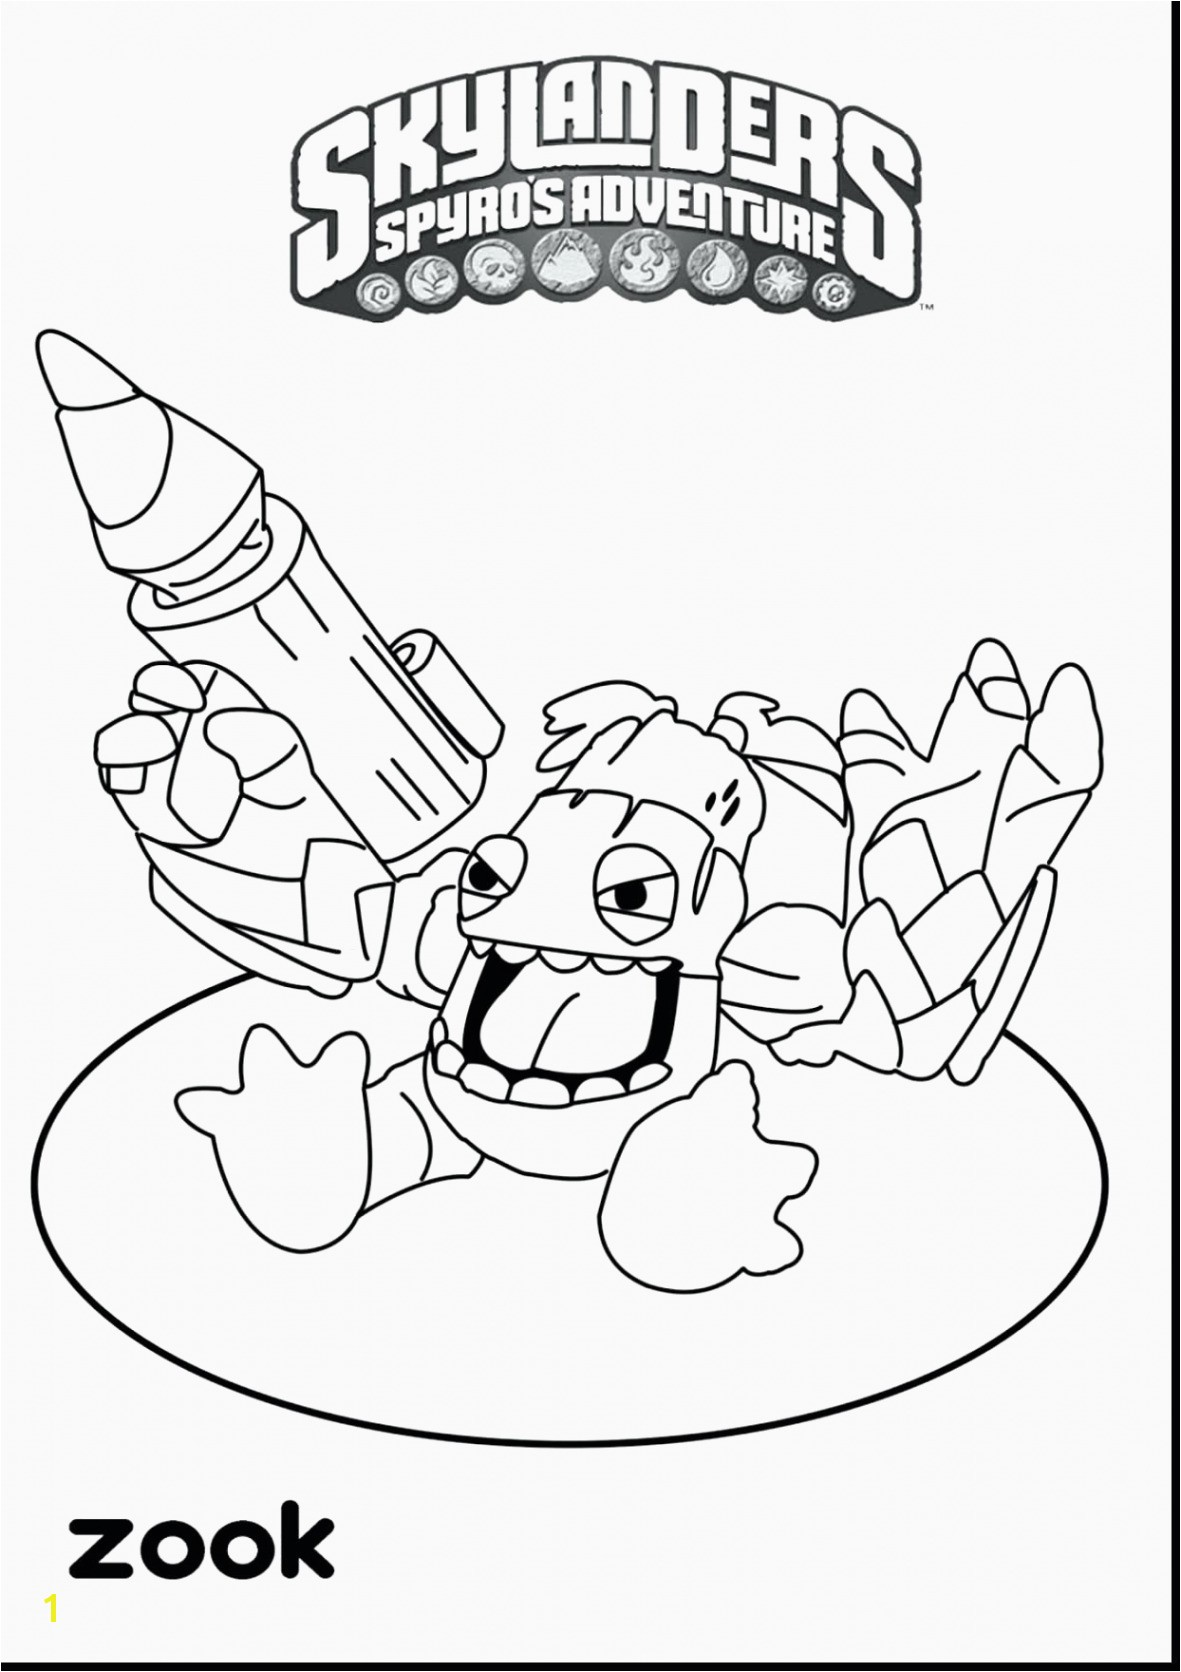 Kickball Coloring Pages Kickball Coloring Pages Awesome Free Christmas Coloring Pages